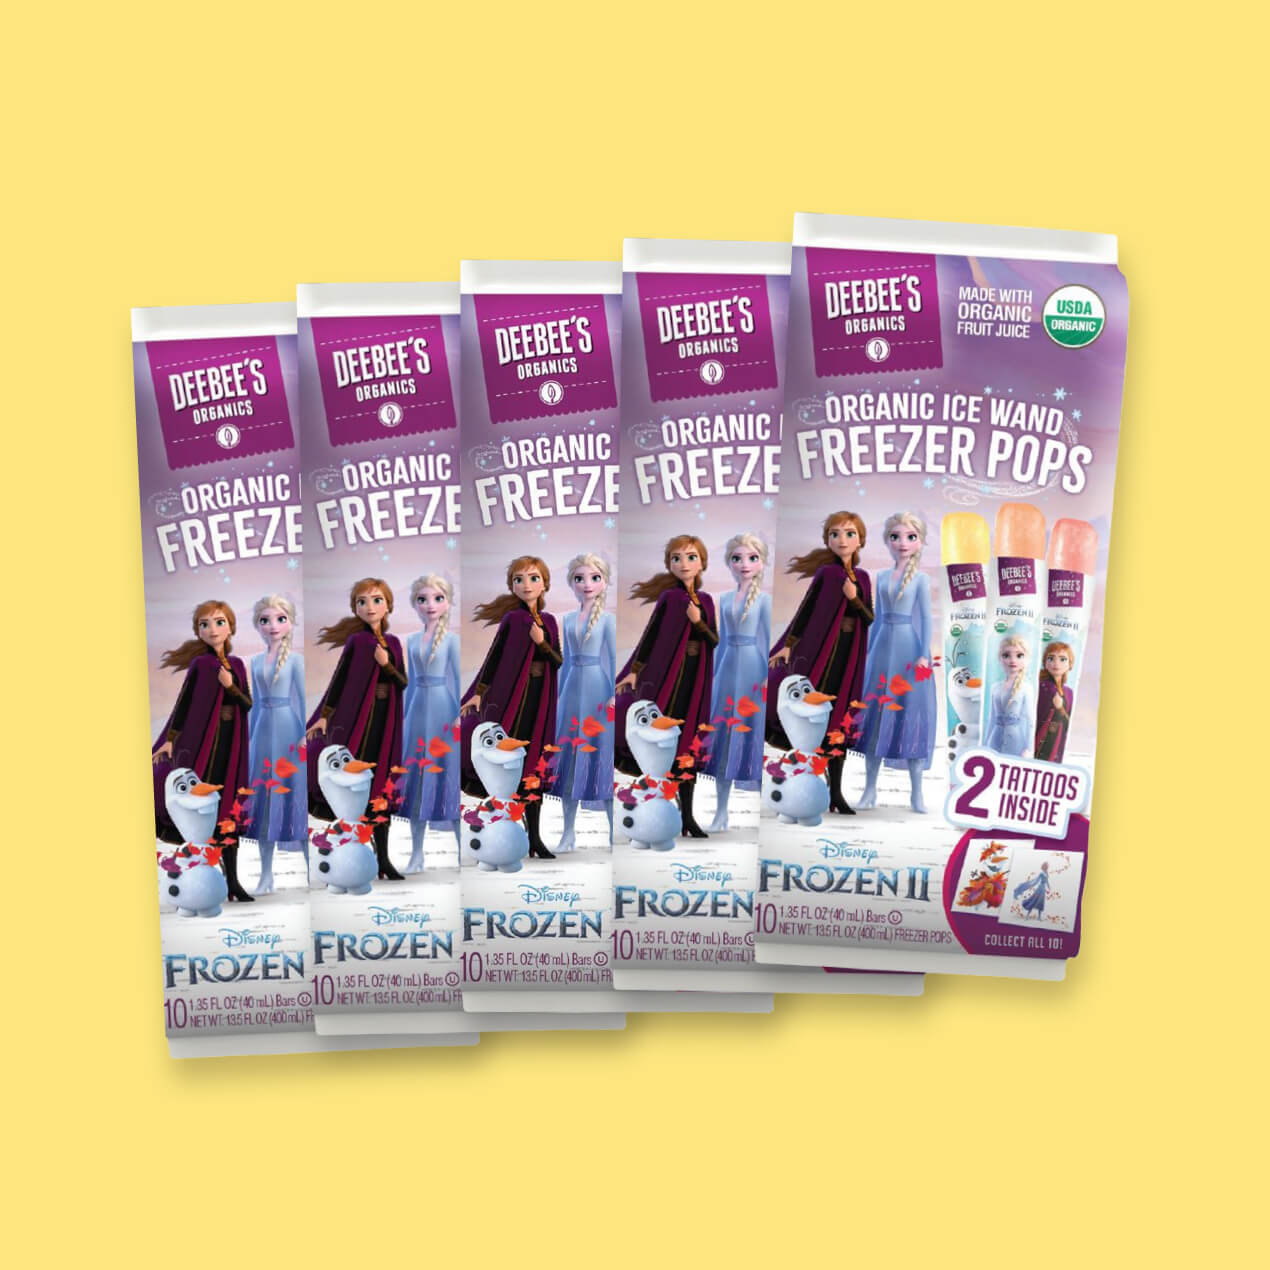 Congrats to DeeBee's Organics on its Upcoming Frozen 2 Product Line Launch!